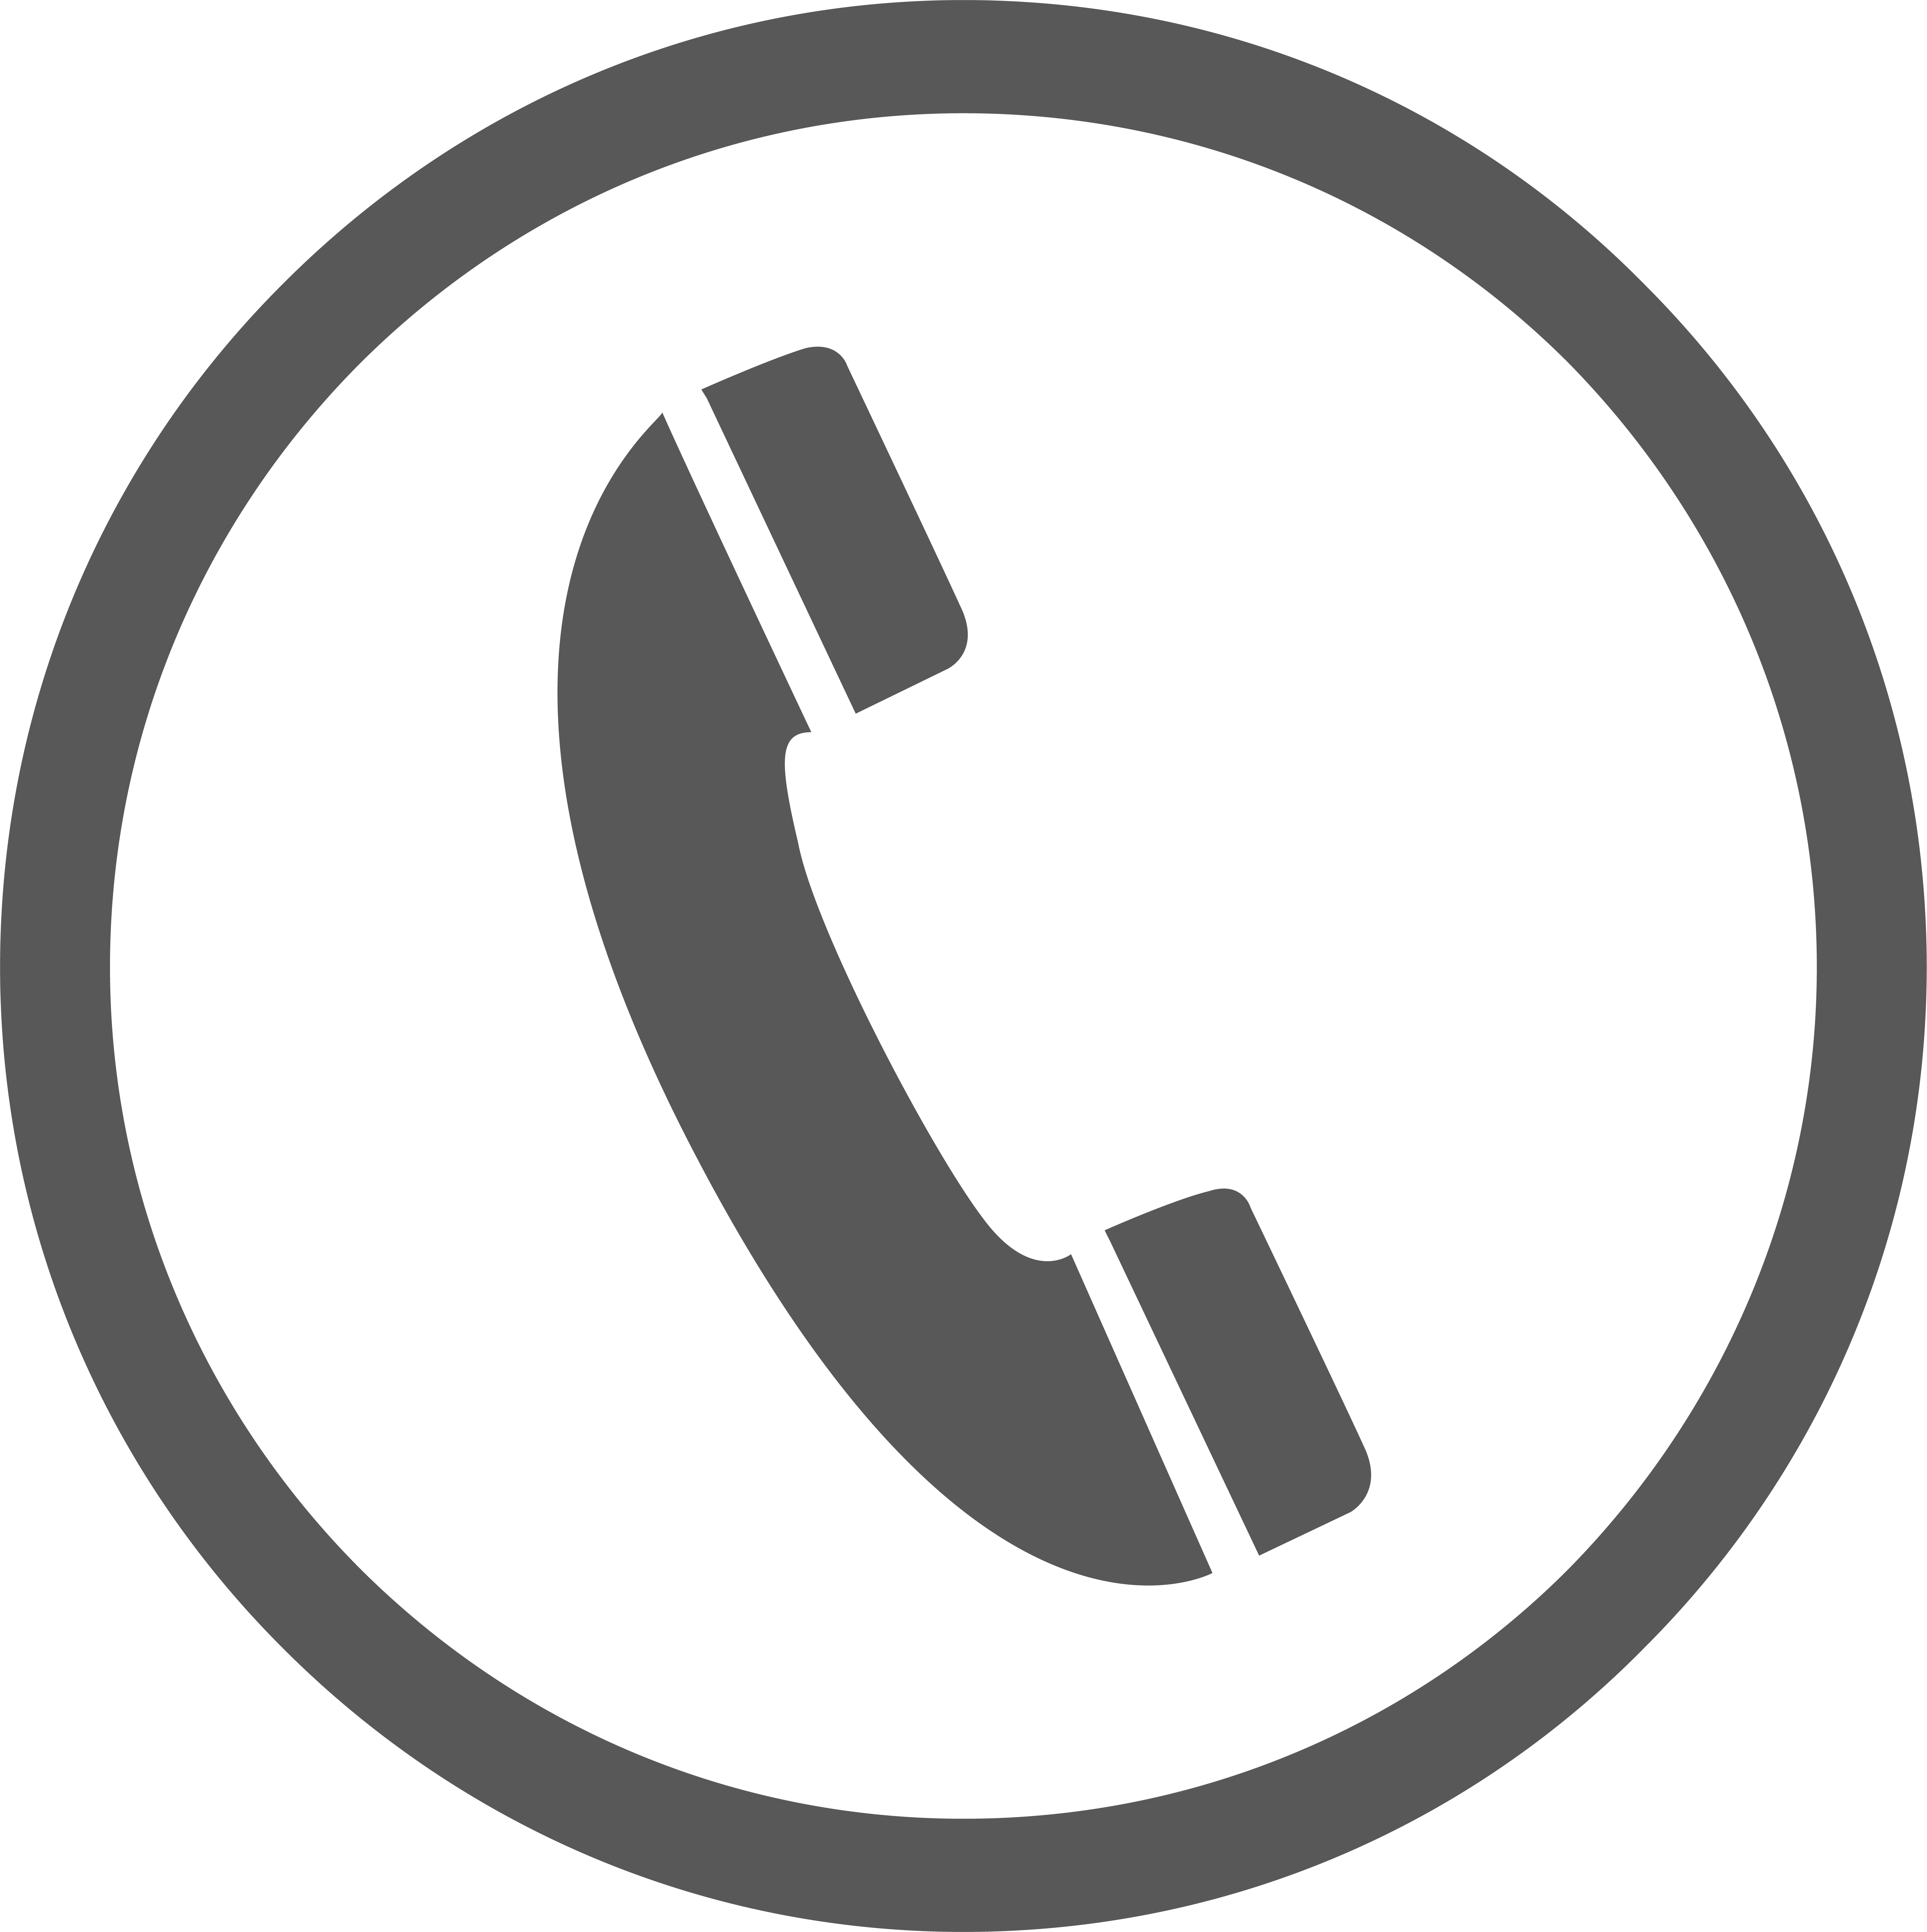 Icon telephone png. Symbol transprent free download